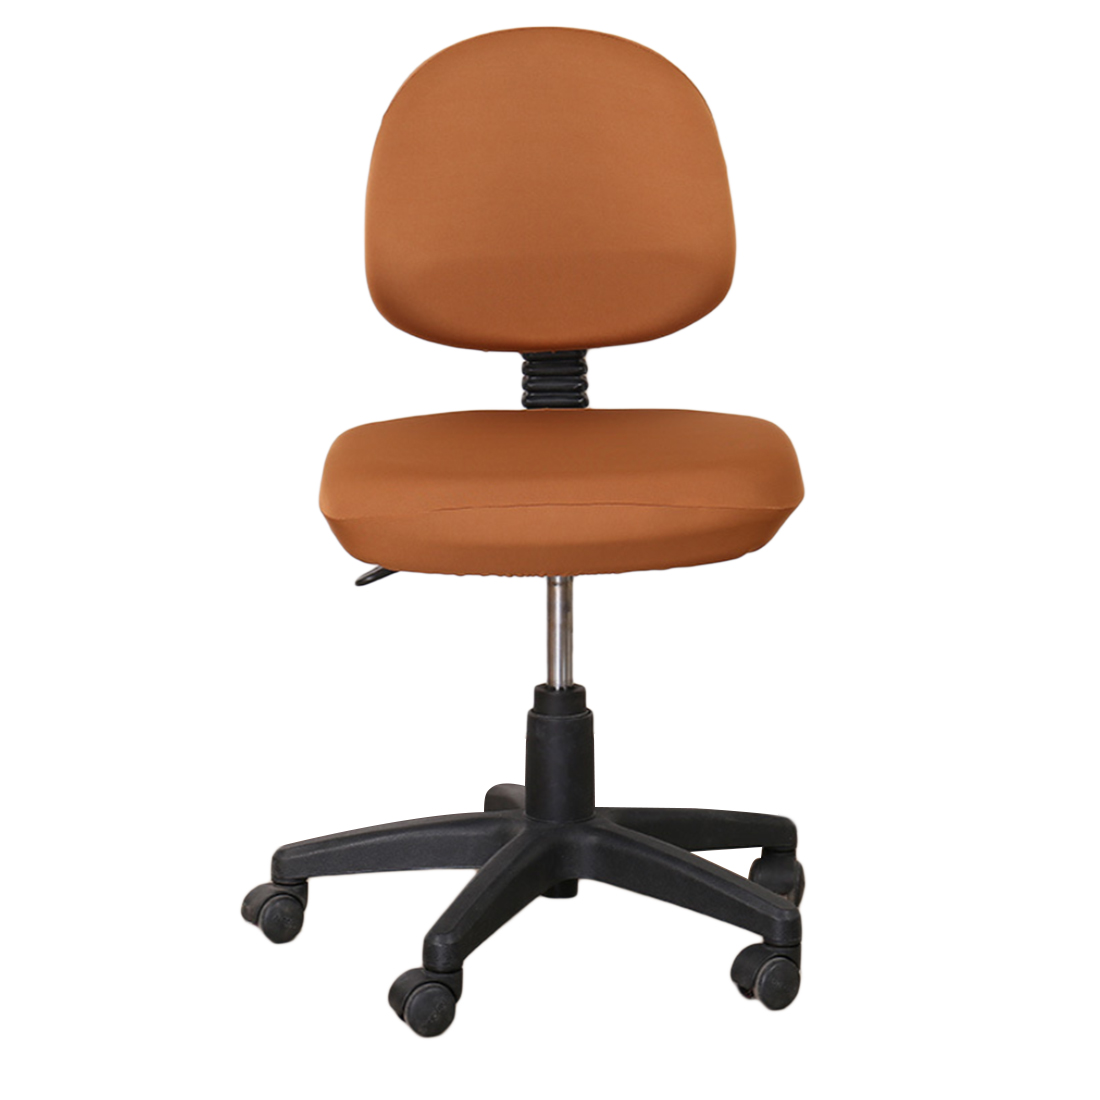 Elastic Chair Covers Made with Polyester Material For Office and Computer Chair in Universal Size 5